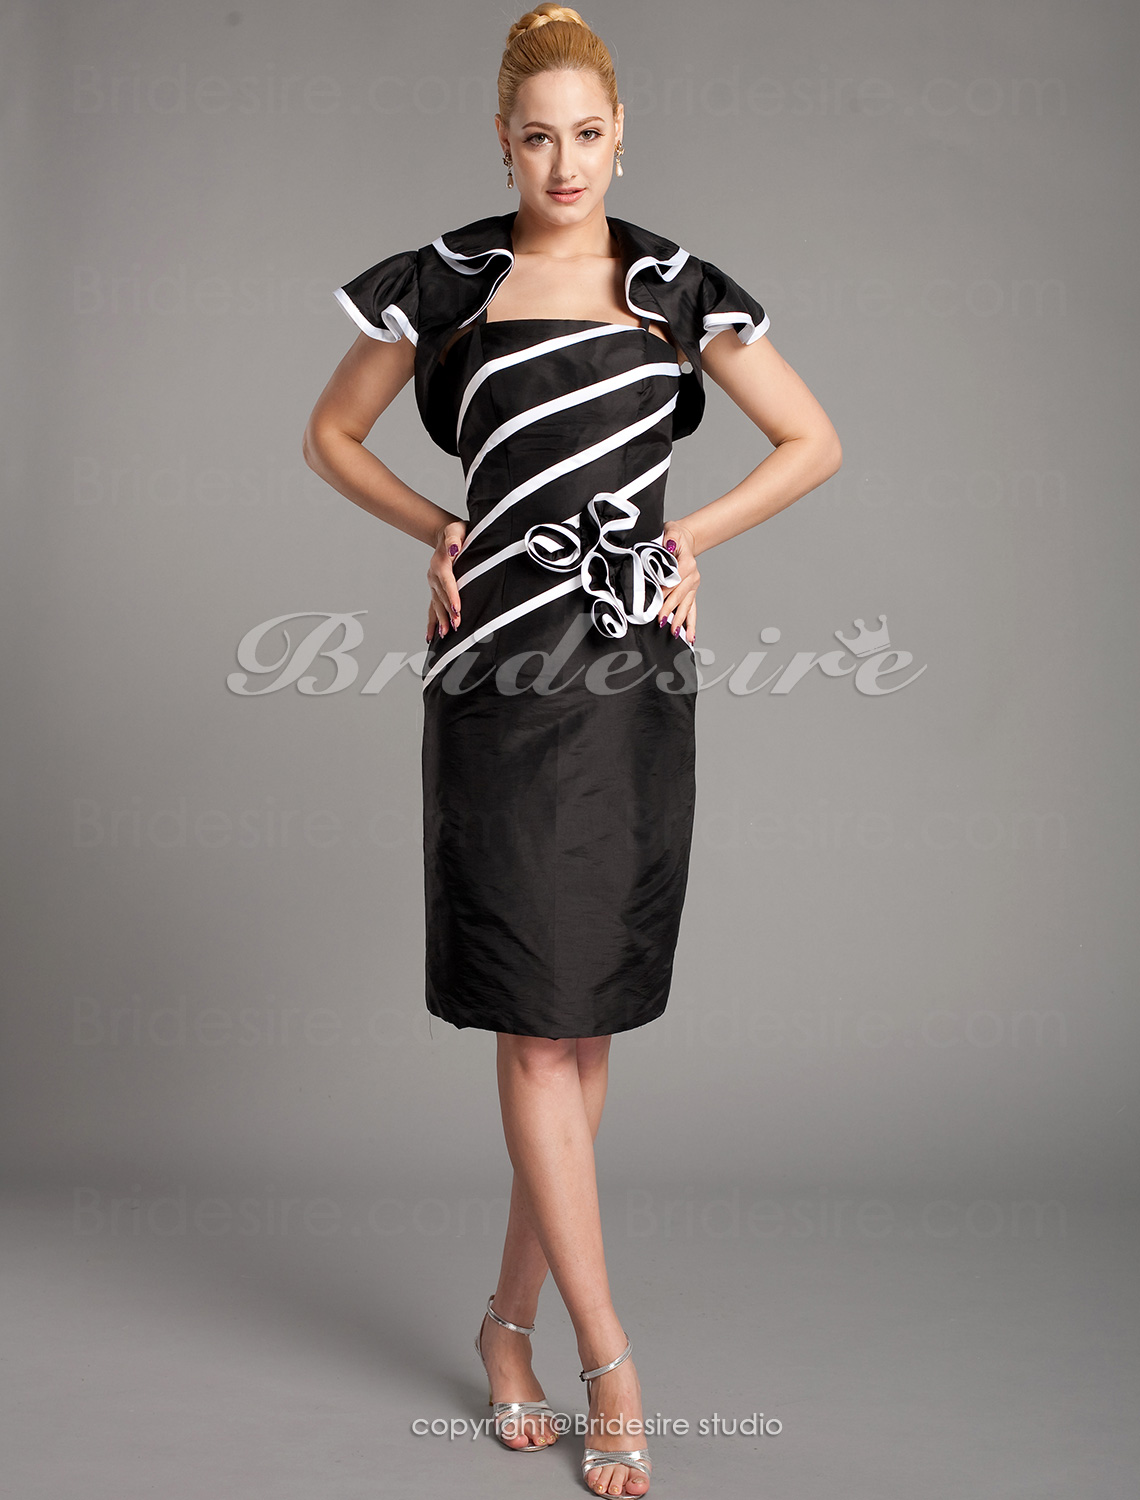 Sheath/Column Knee-length Short Sleeve Spaghetti Straps Mother of the Bride Dress With A Wrap